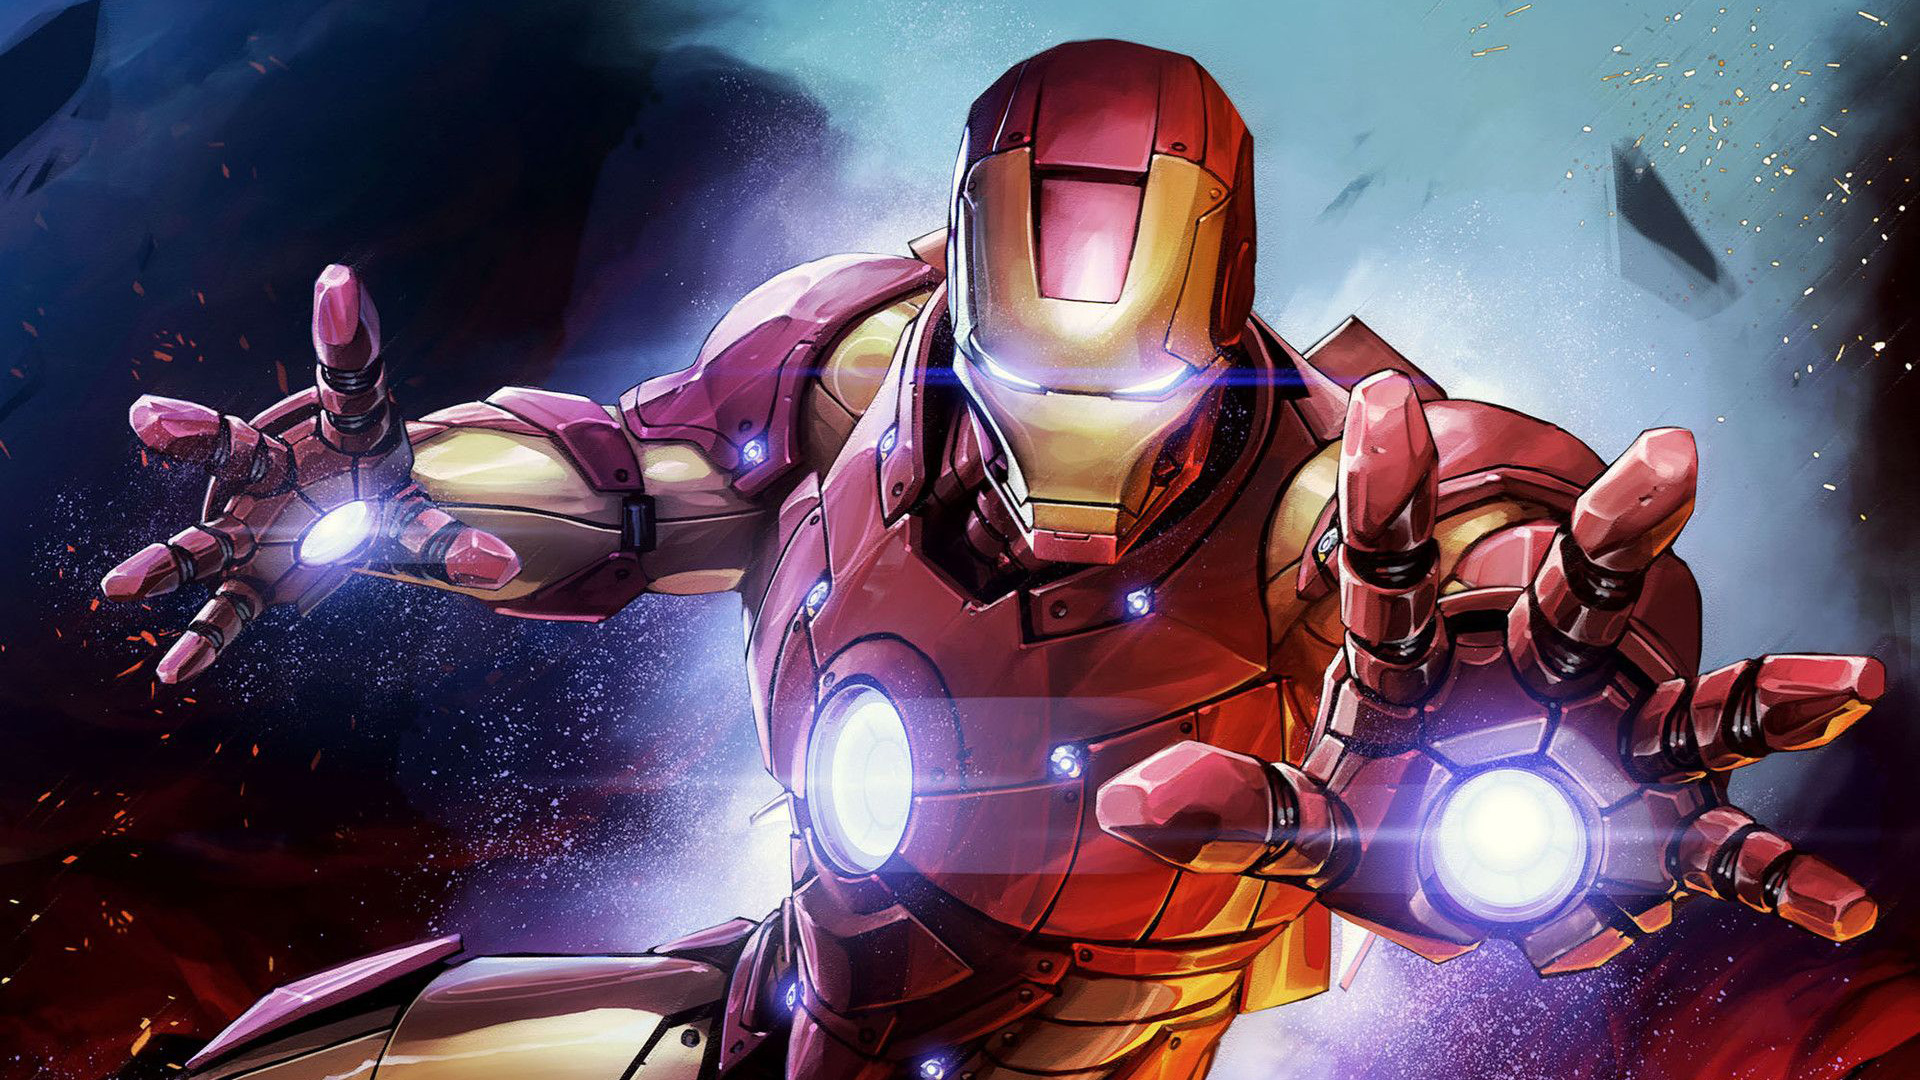 Iron Man Hd Wallpaper Hintergrund 1920x1080 Id971656